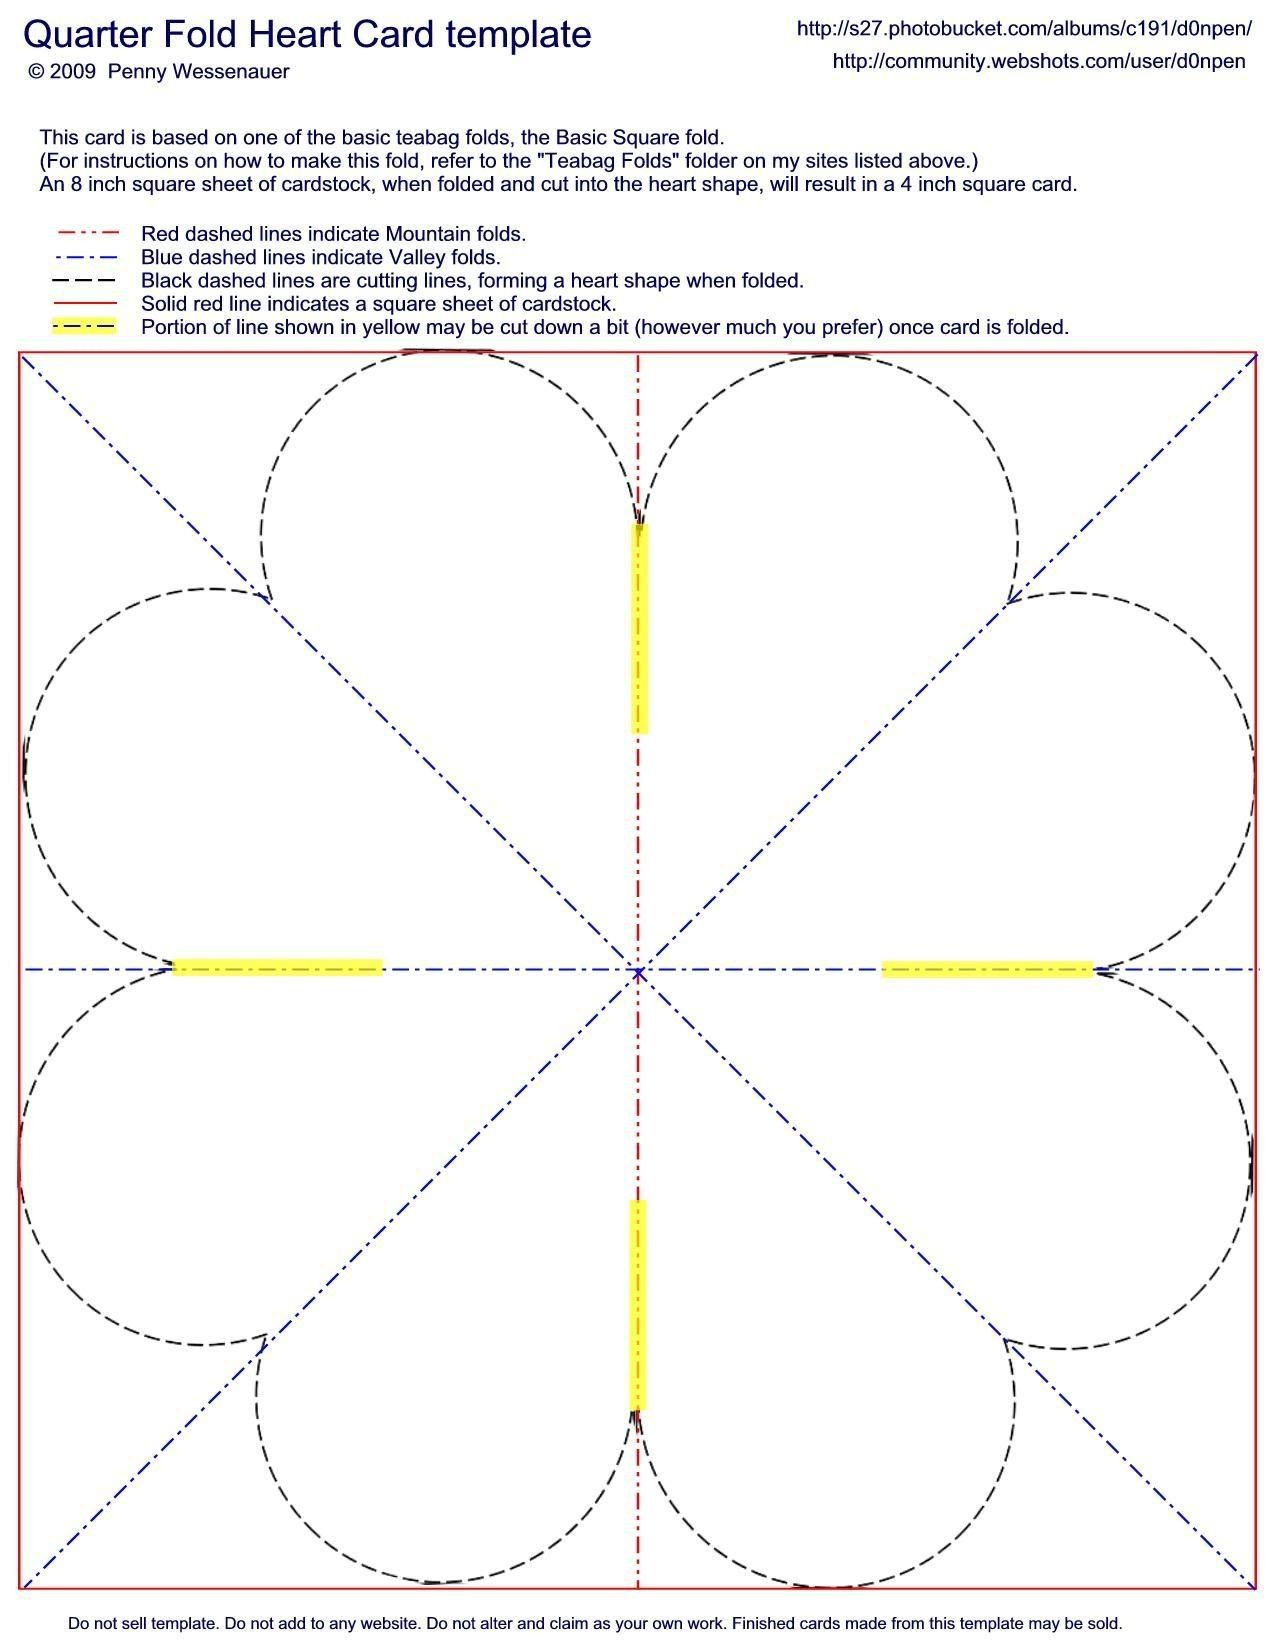 Quarter-Fold Heart Card Template | Fancy Folds | Card Making - Free Printable Quarter Fold Christmas Cards